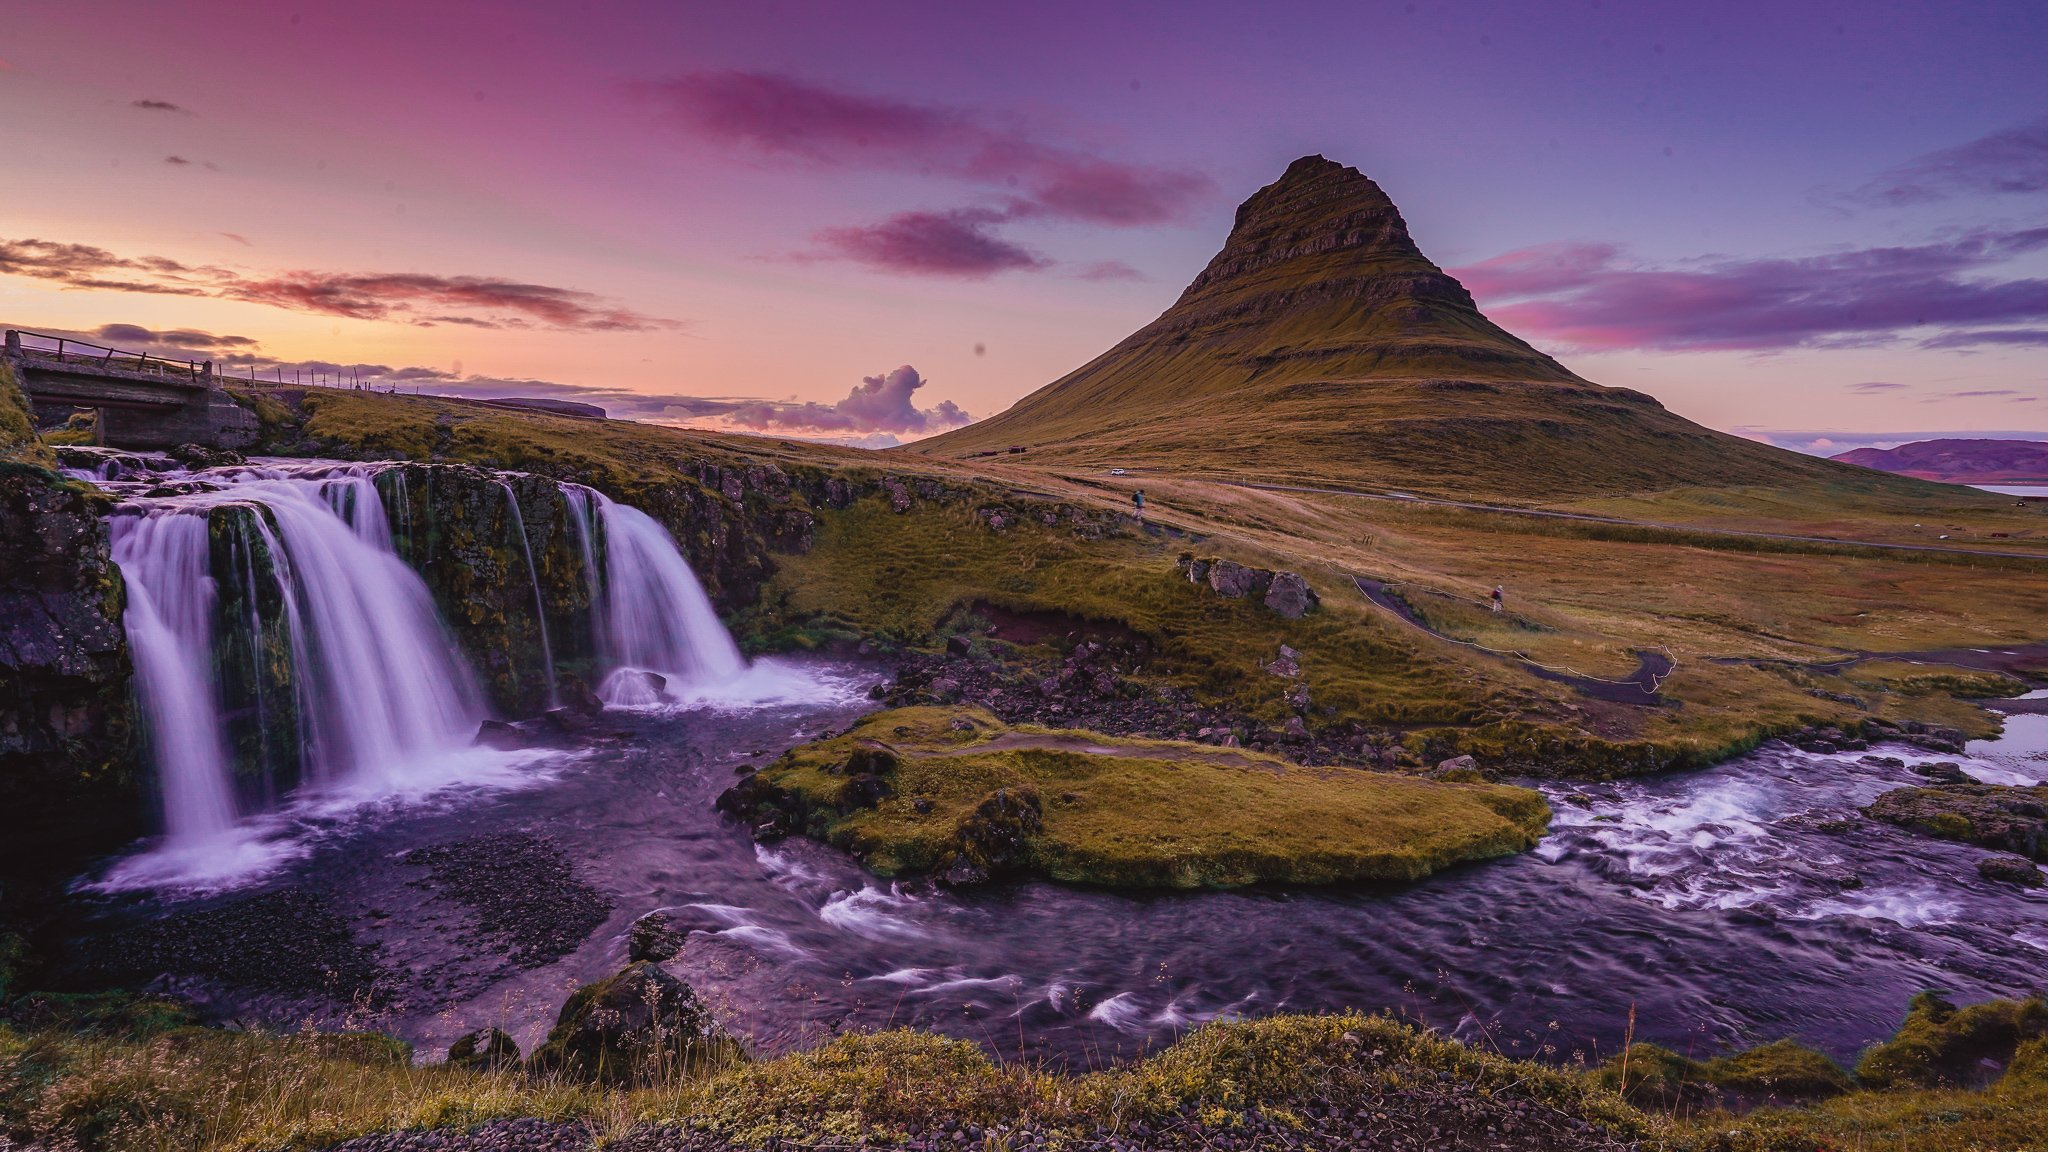 Sunset at kirkjufellsfoss iceland an experience to add to your travel bucket list